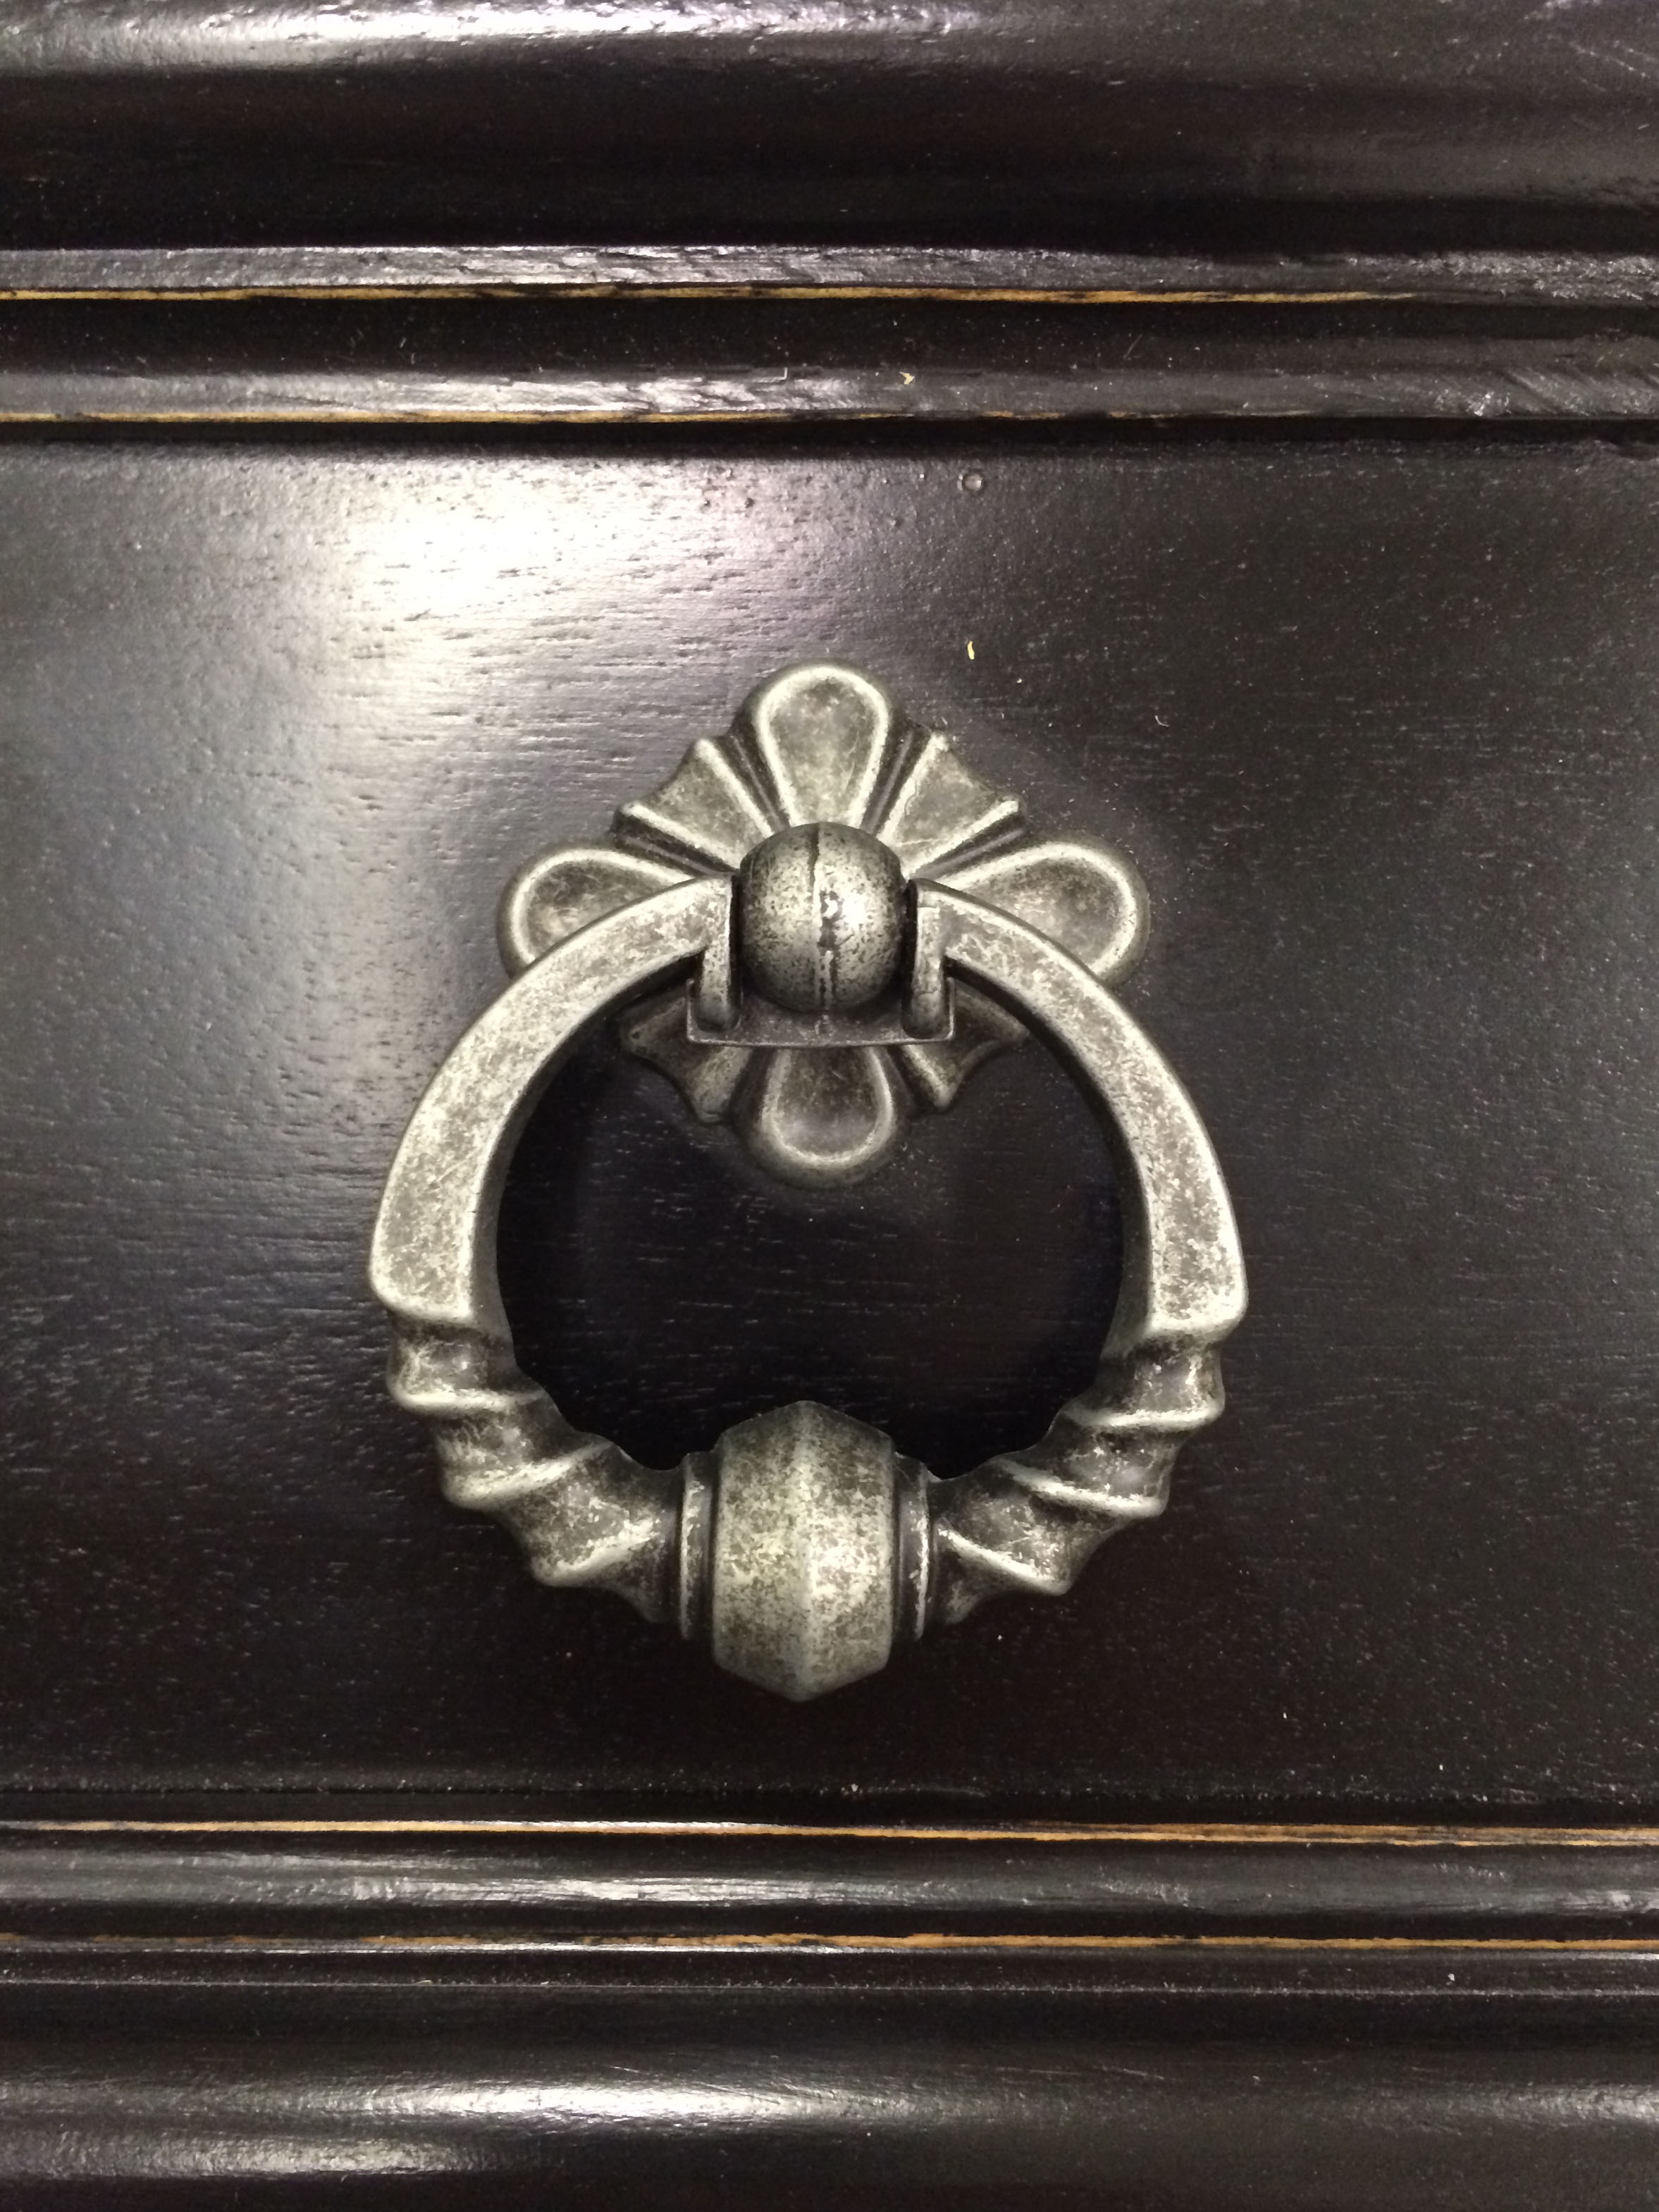 Detail of hardware and finish